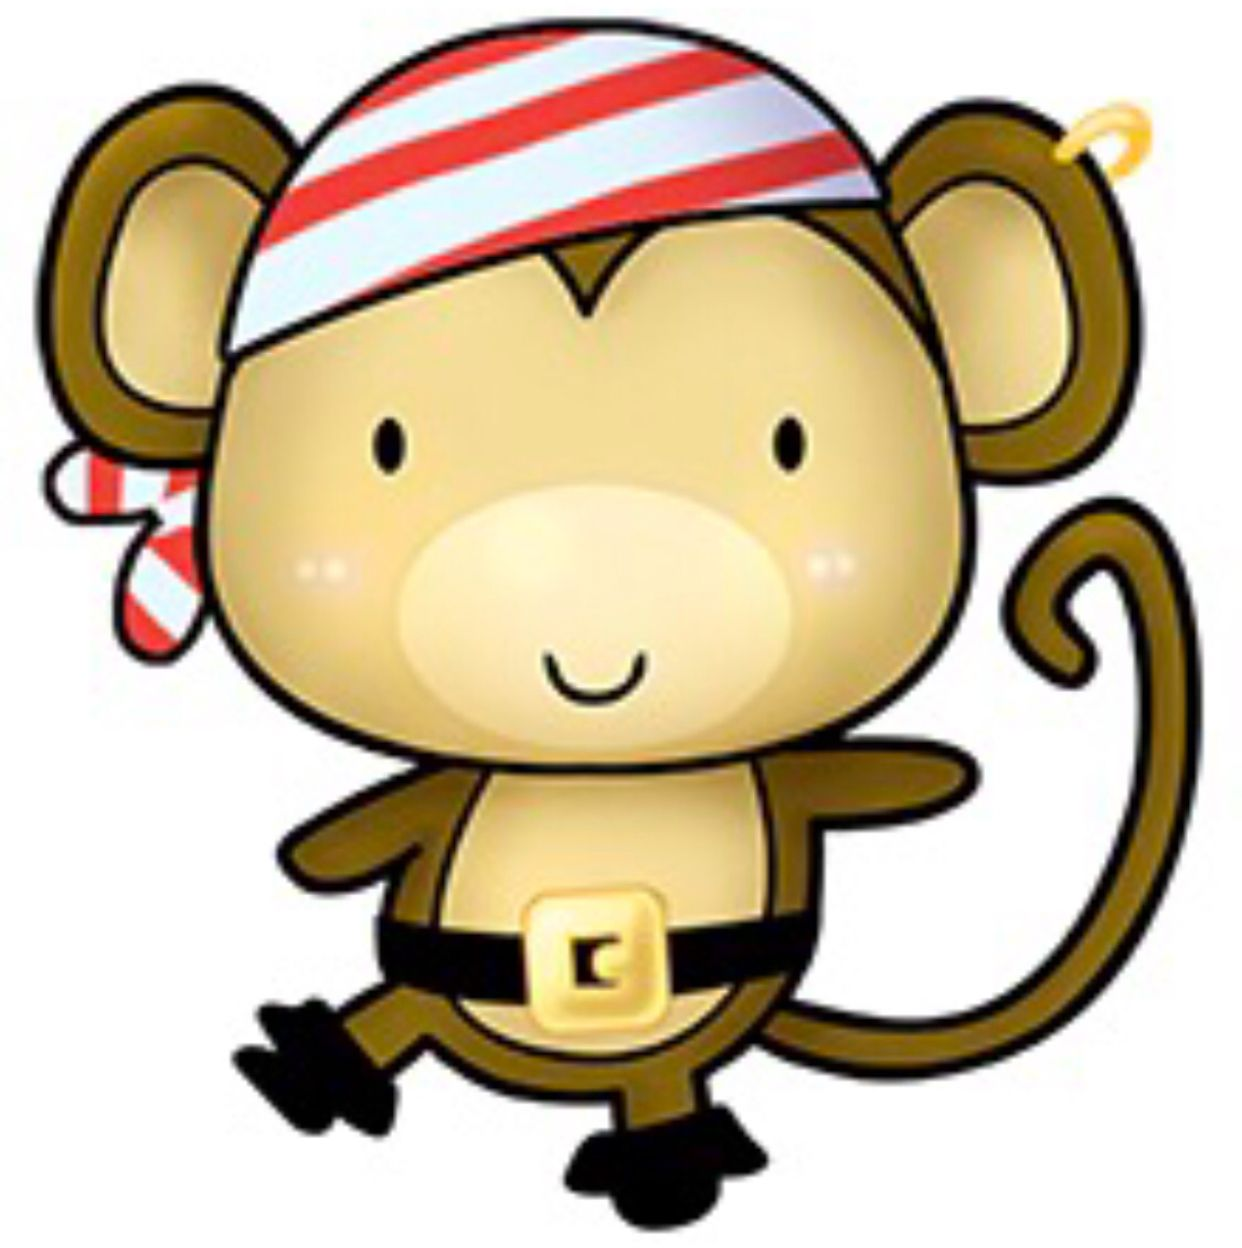 Baby pirate clipart clip free stock Pirate Monkey | clipart | Monkey pictures, Cute cartoon animals ... clip free stock